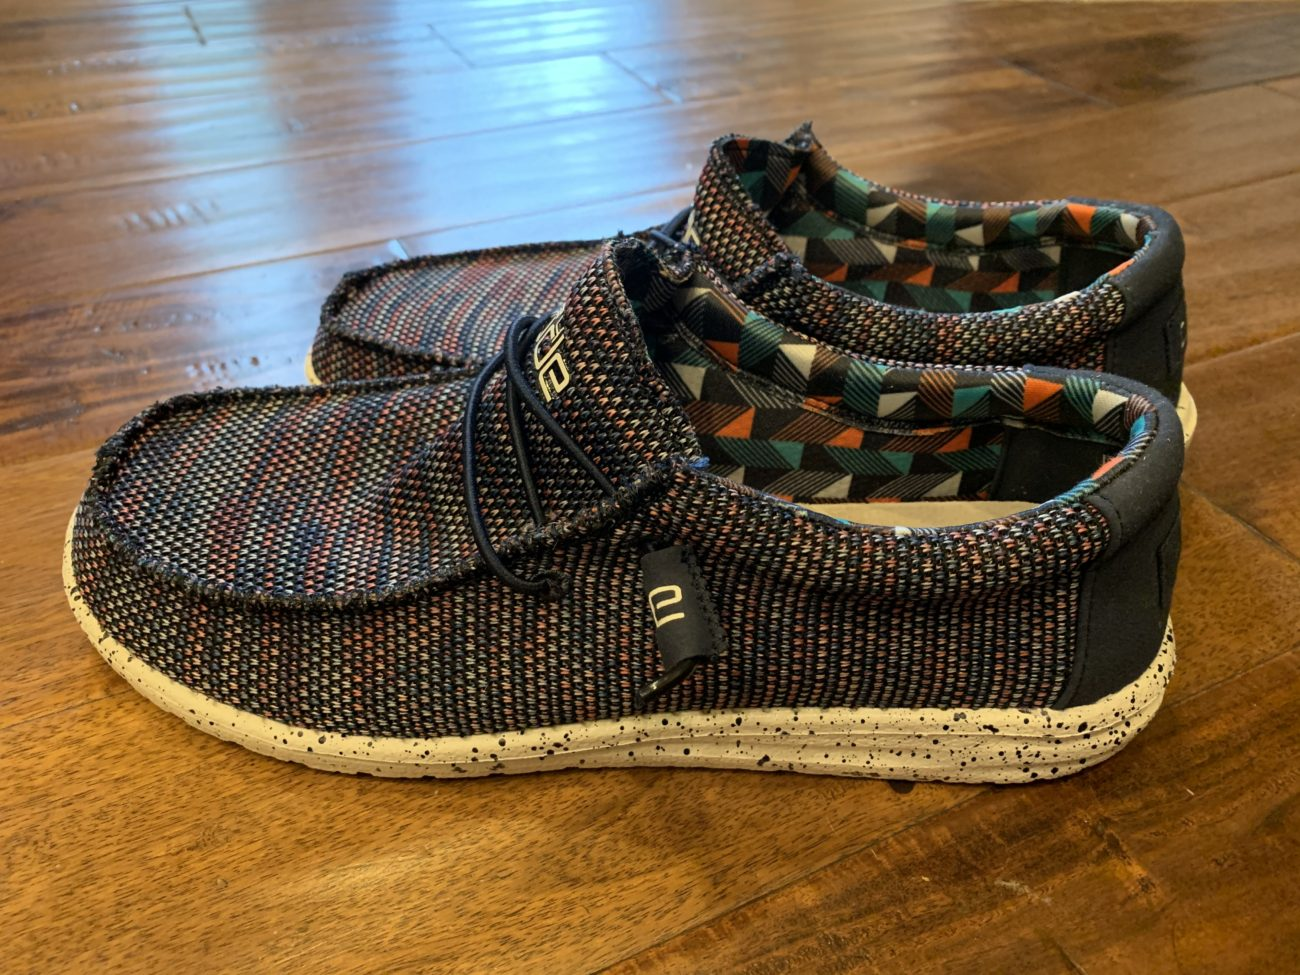 Hey Dude Wally Sox Review - Easy